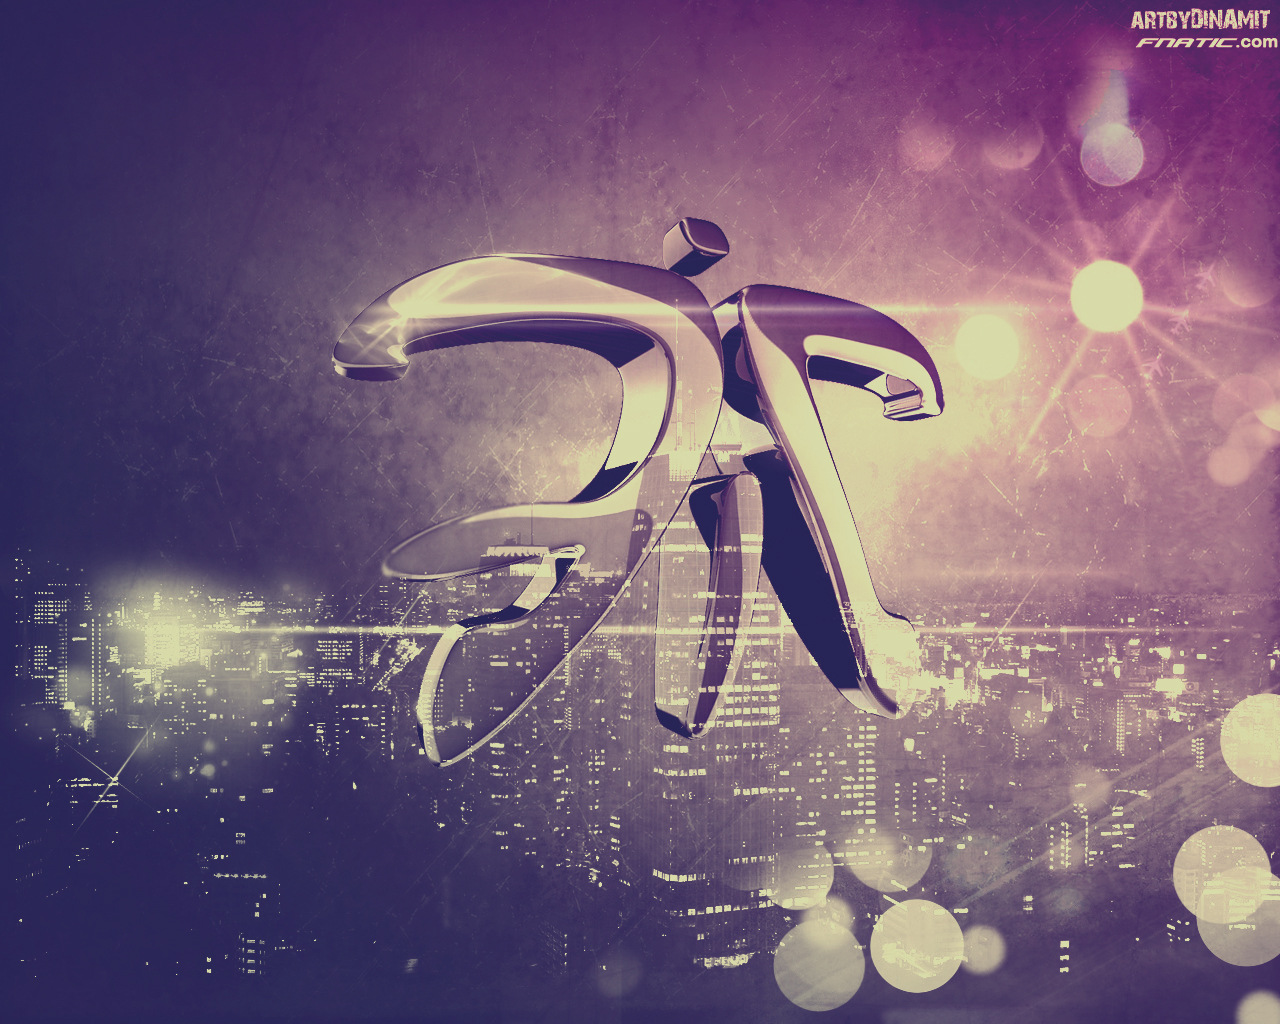 fnatic wallpapers city logo by dinamit956 on deviantart